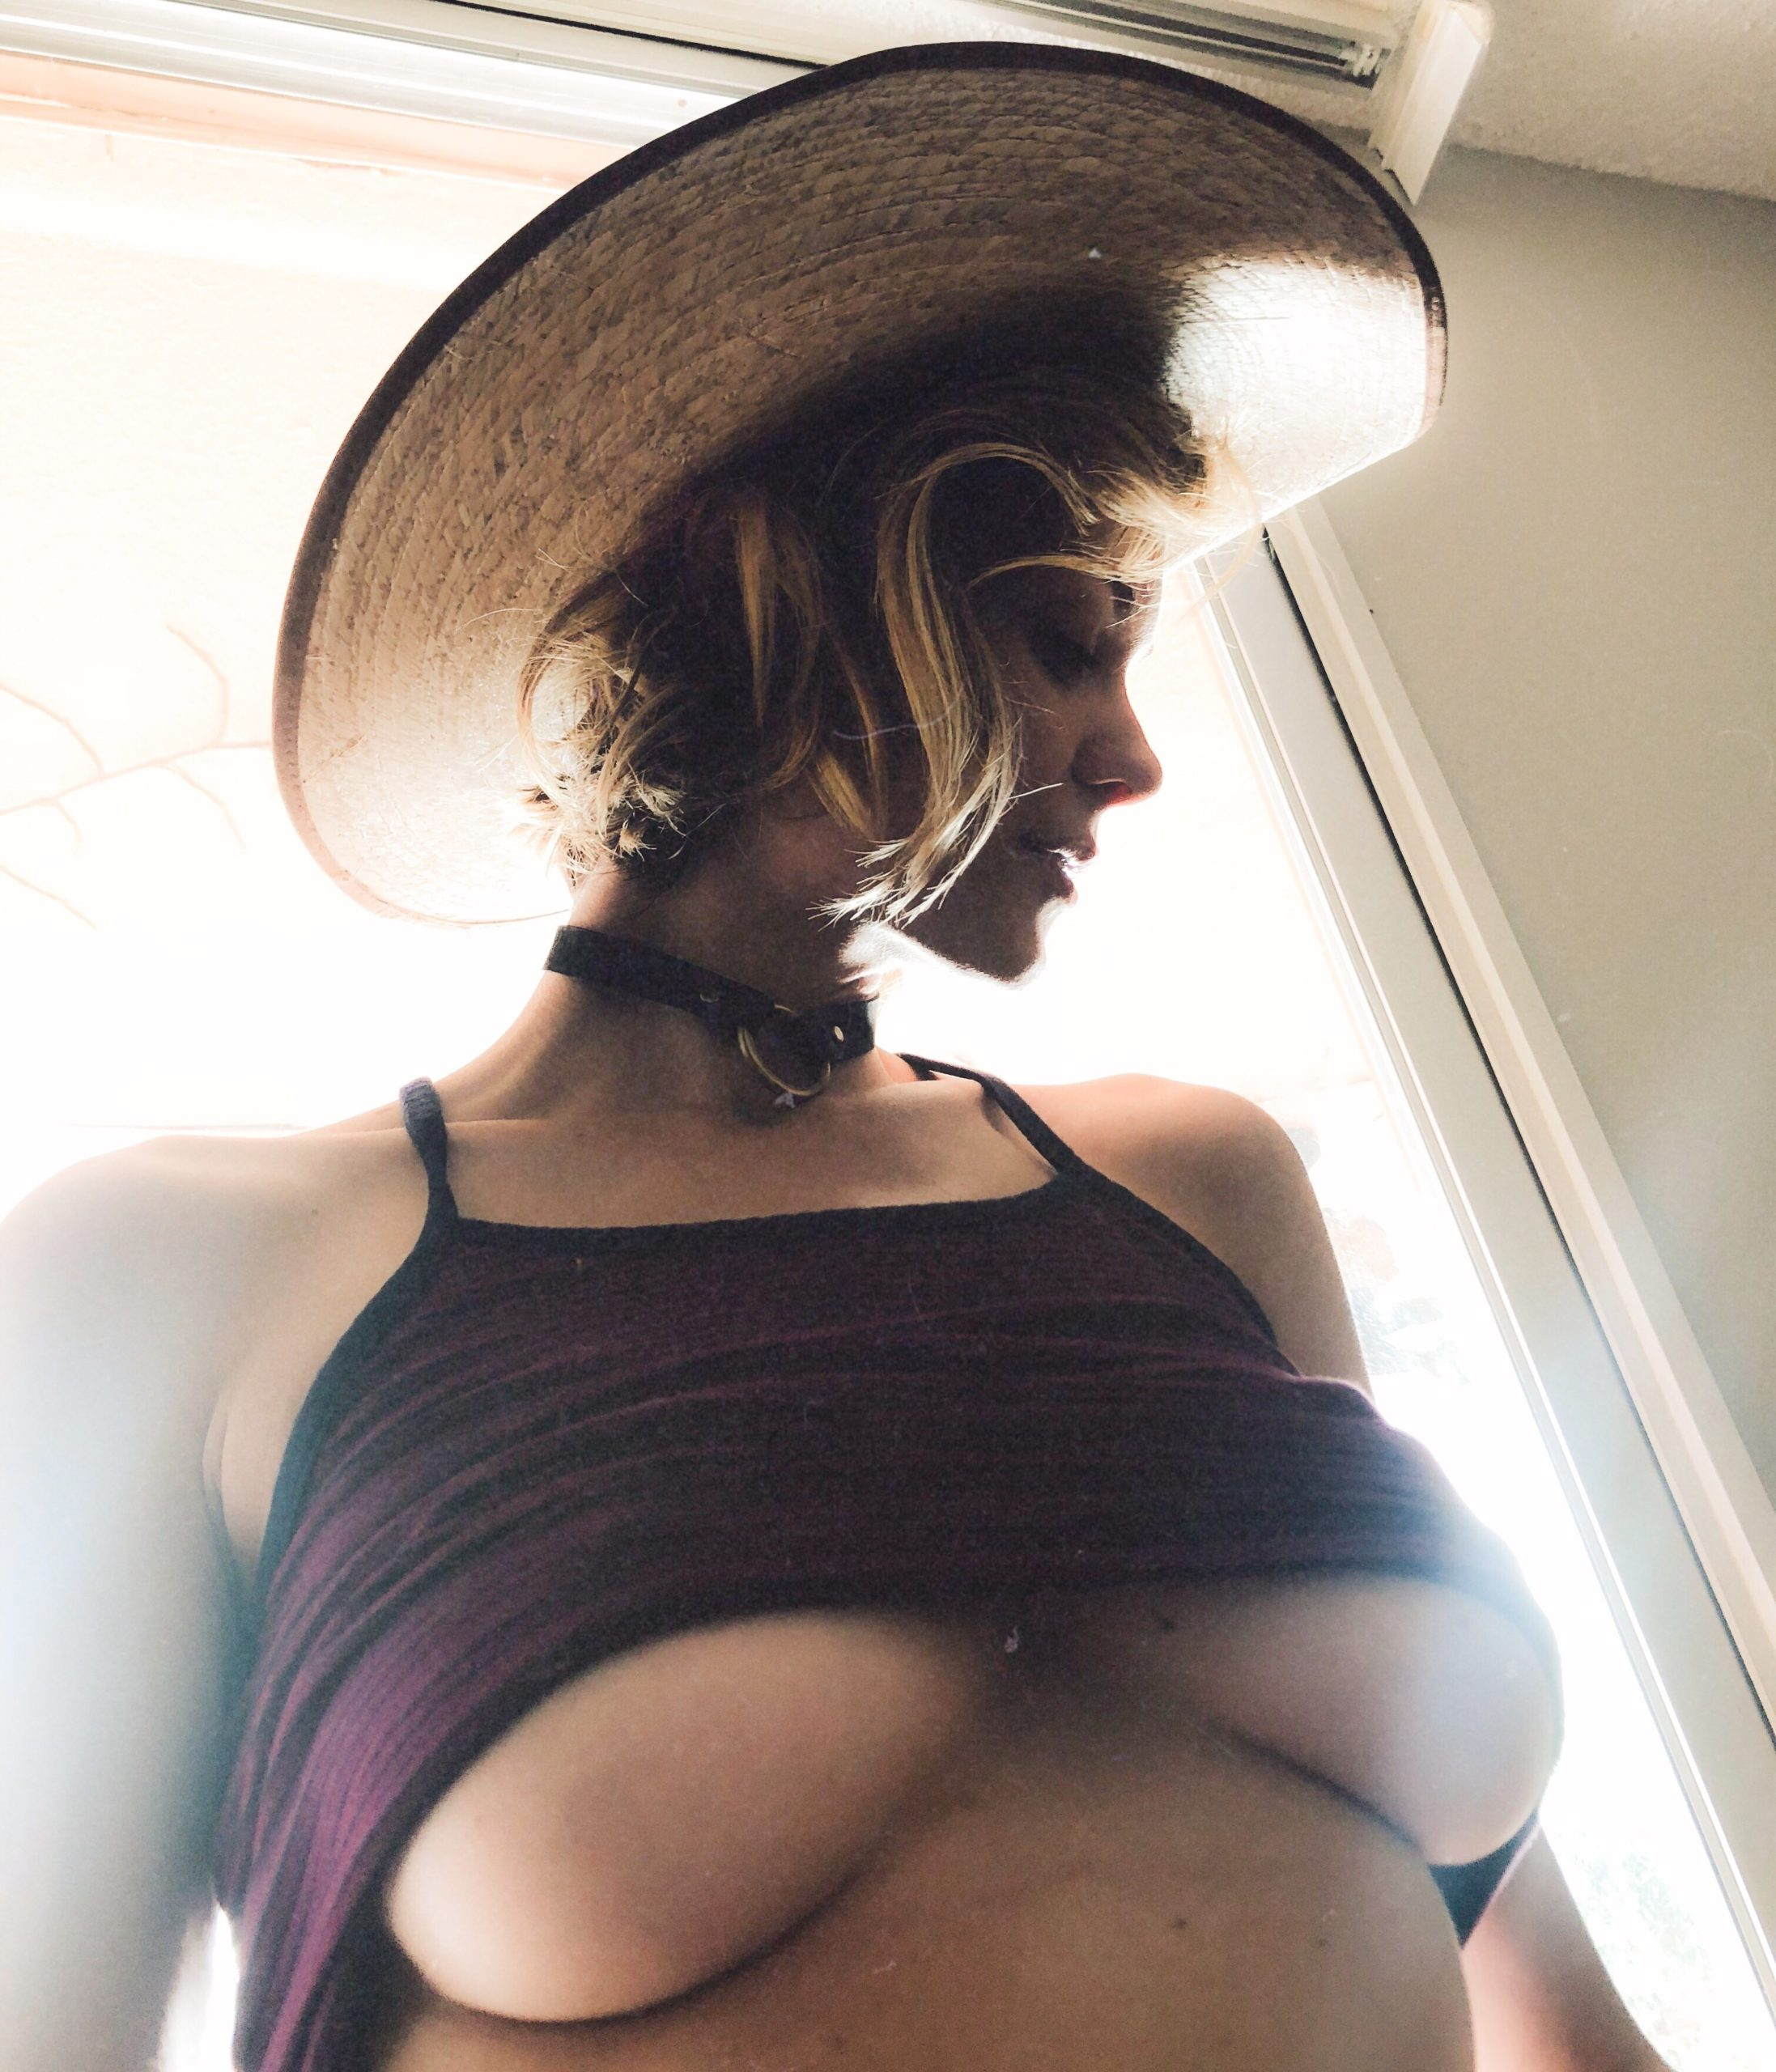 Read more about the article Anna cowboy